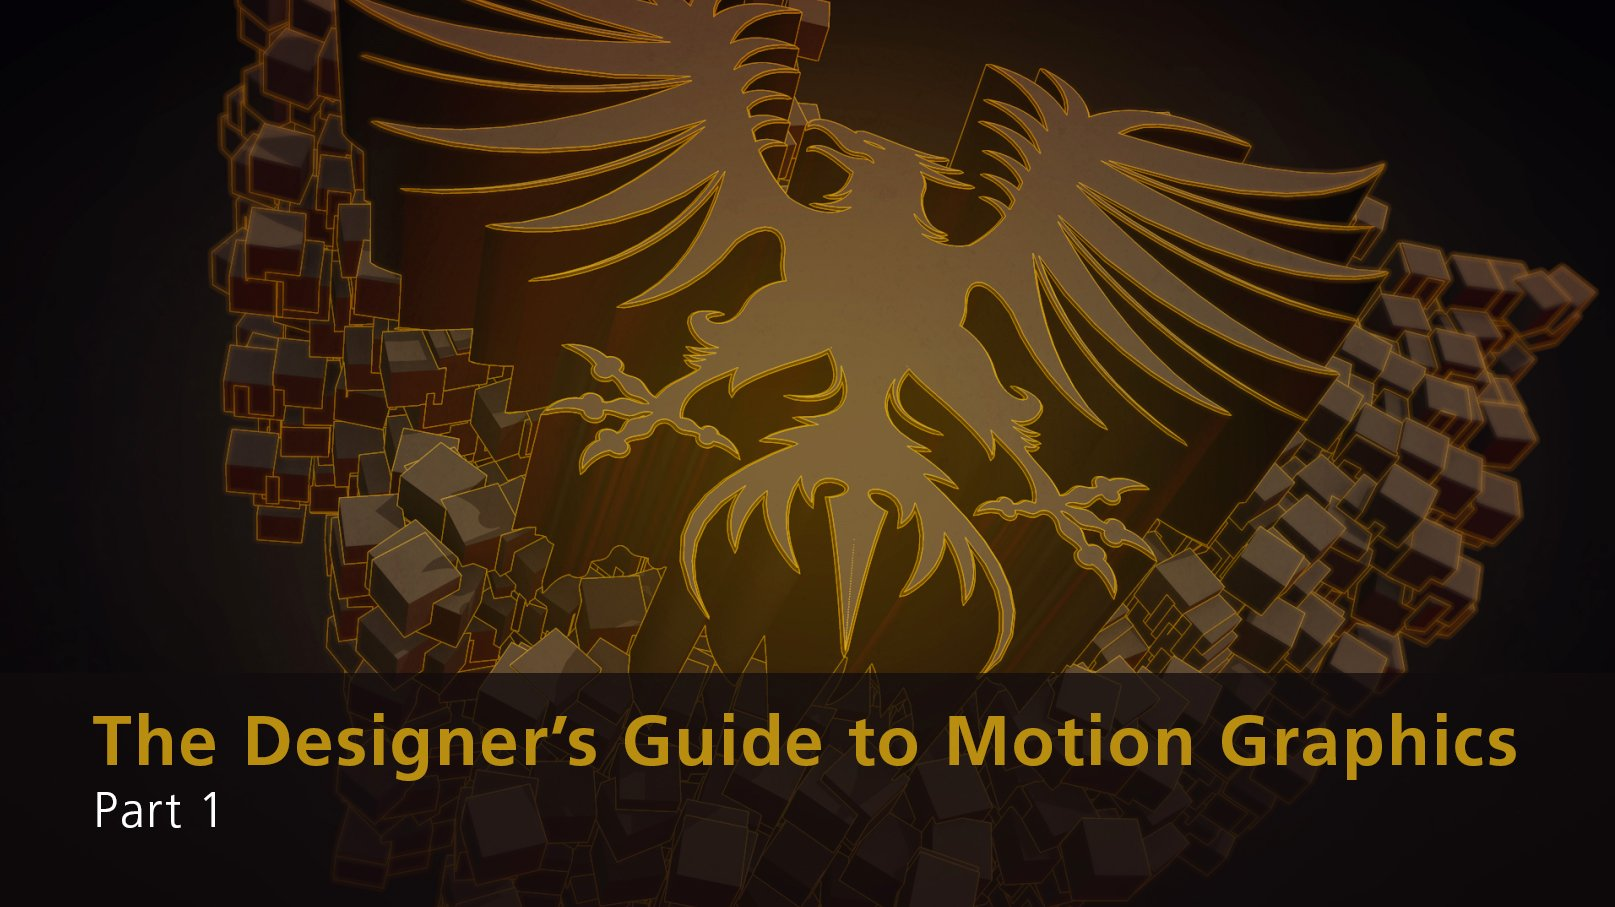 The Designer's Guide to Motion Graphics - Part 1